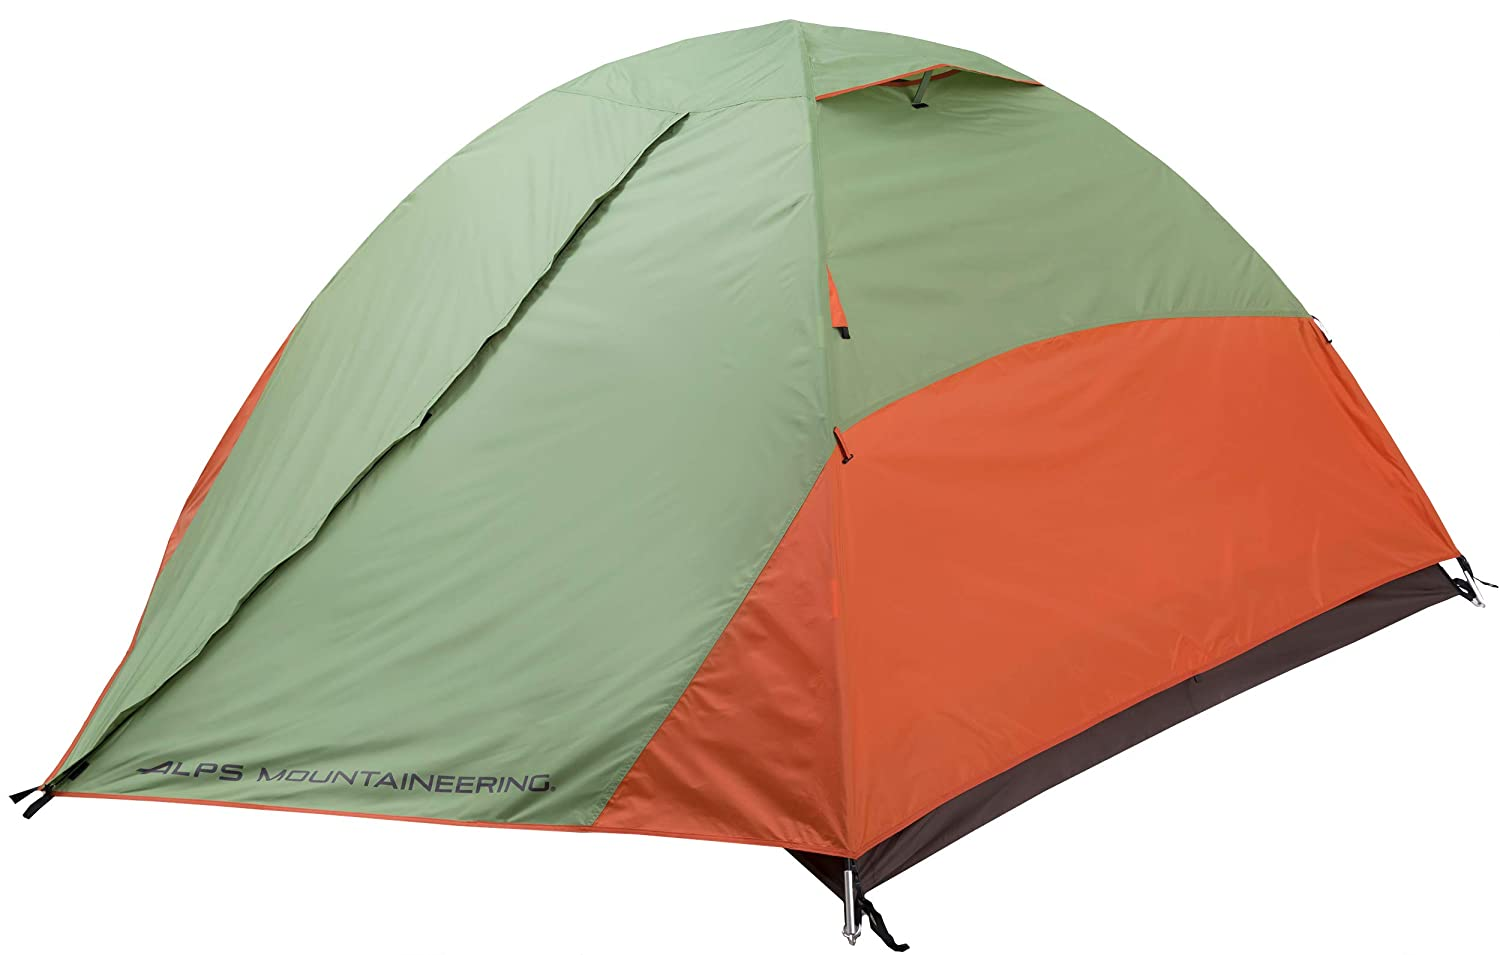 ALPS Mountaineering Taurus 4-Person Tent FG, Sage Rust